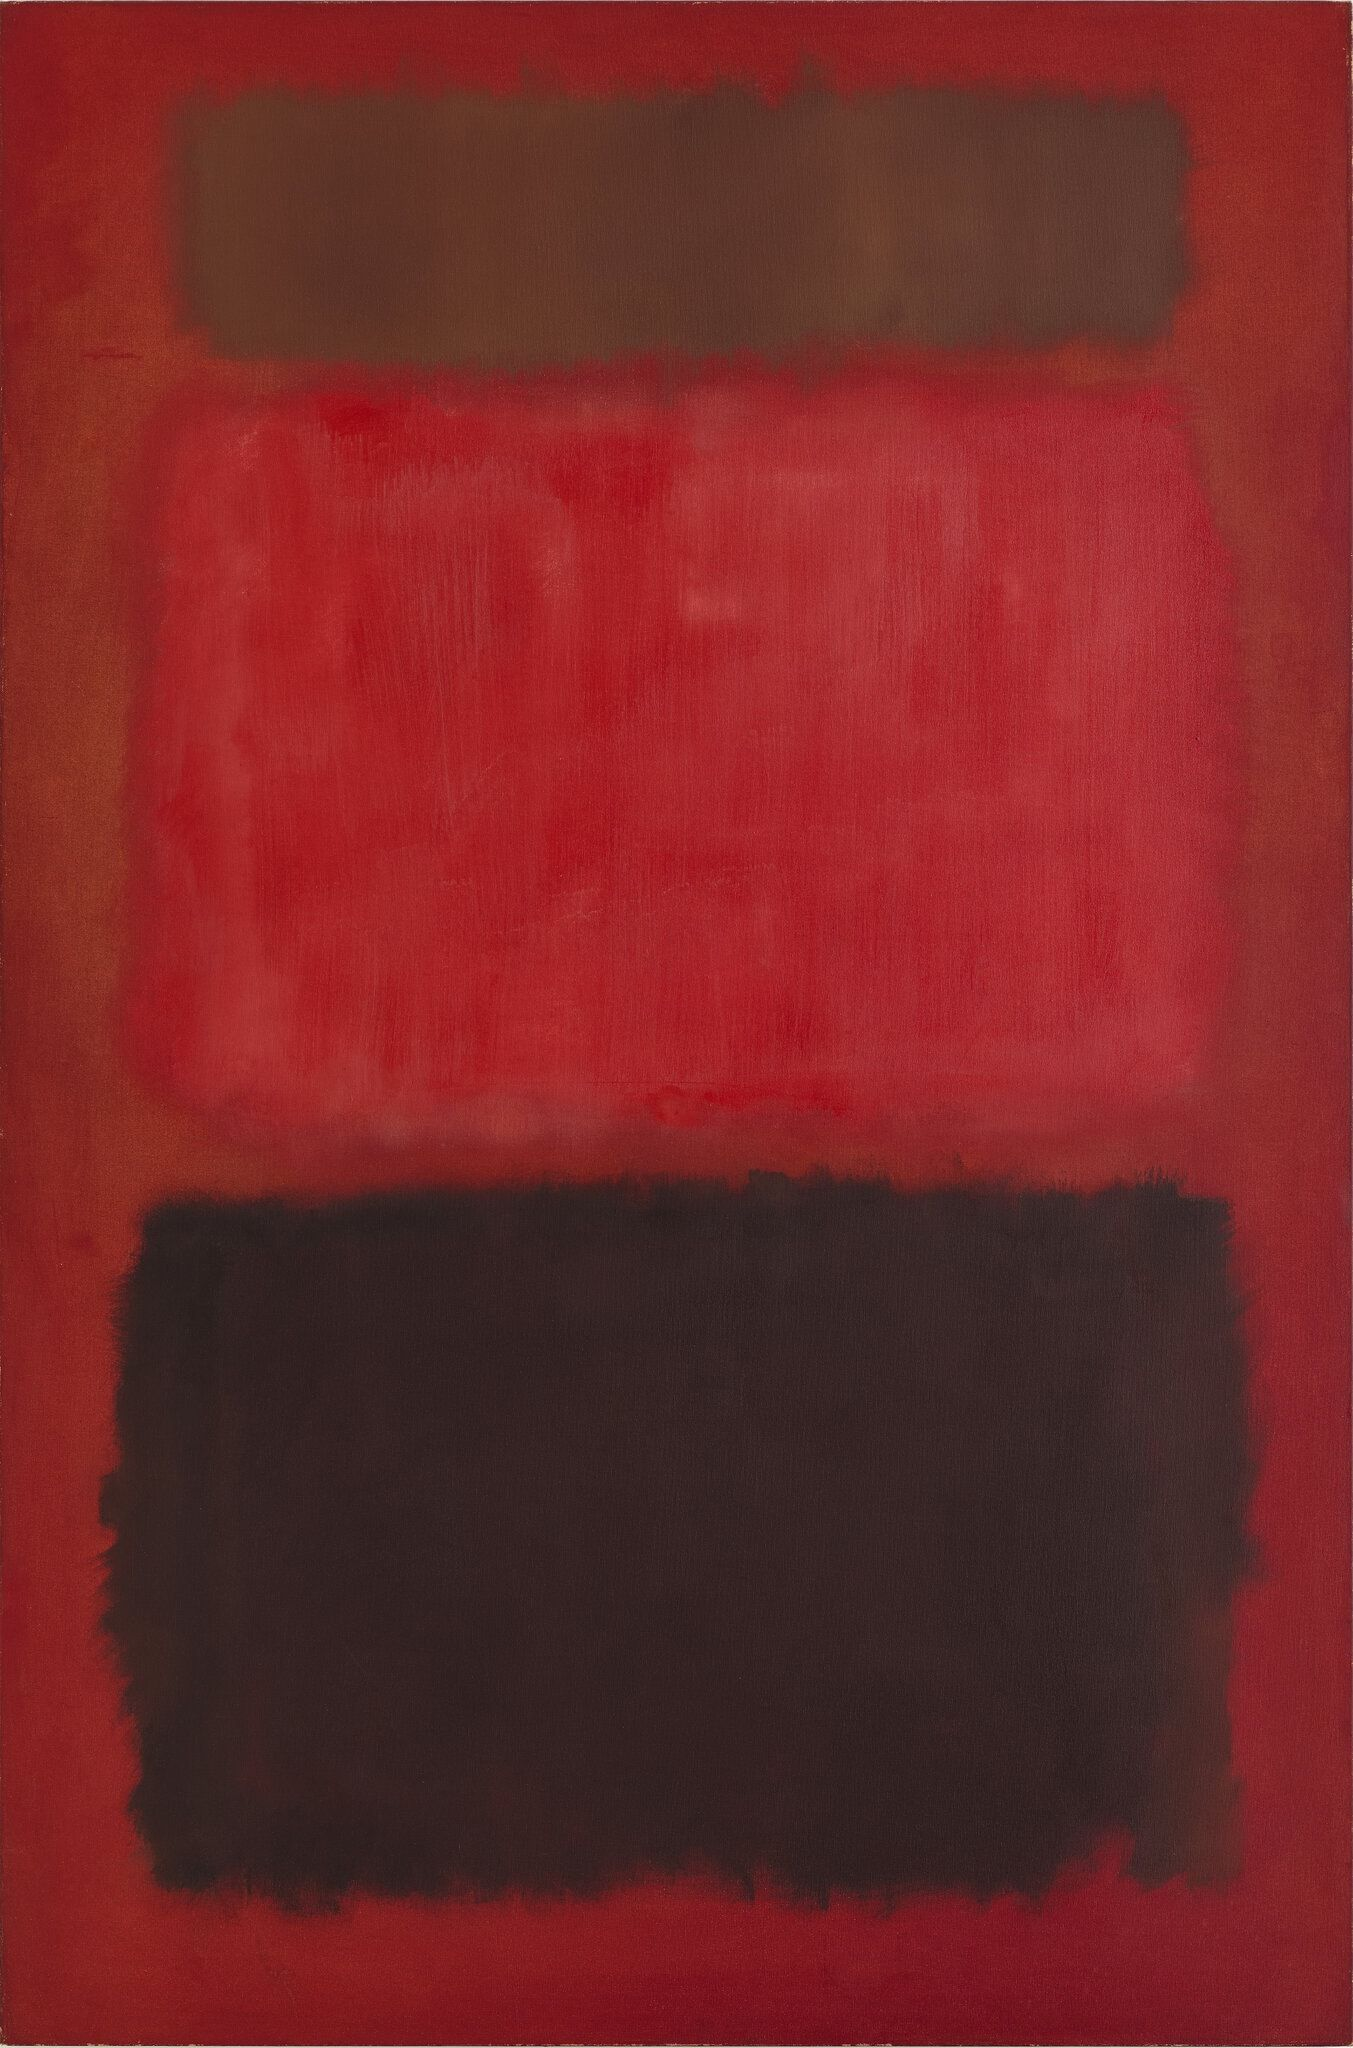 Mark Rothko, Browns and Blacks in Reds, 1957, from